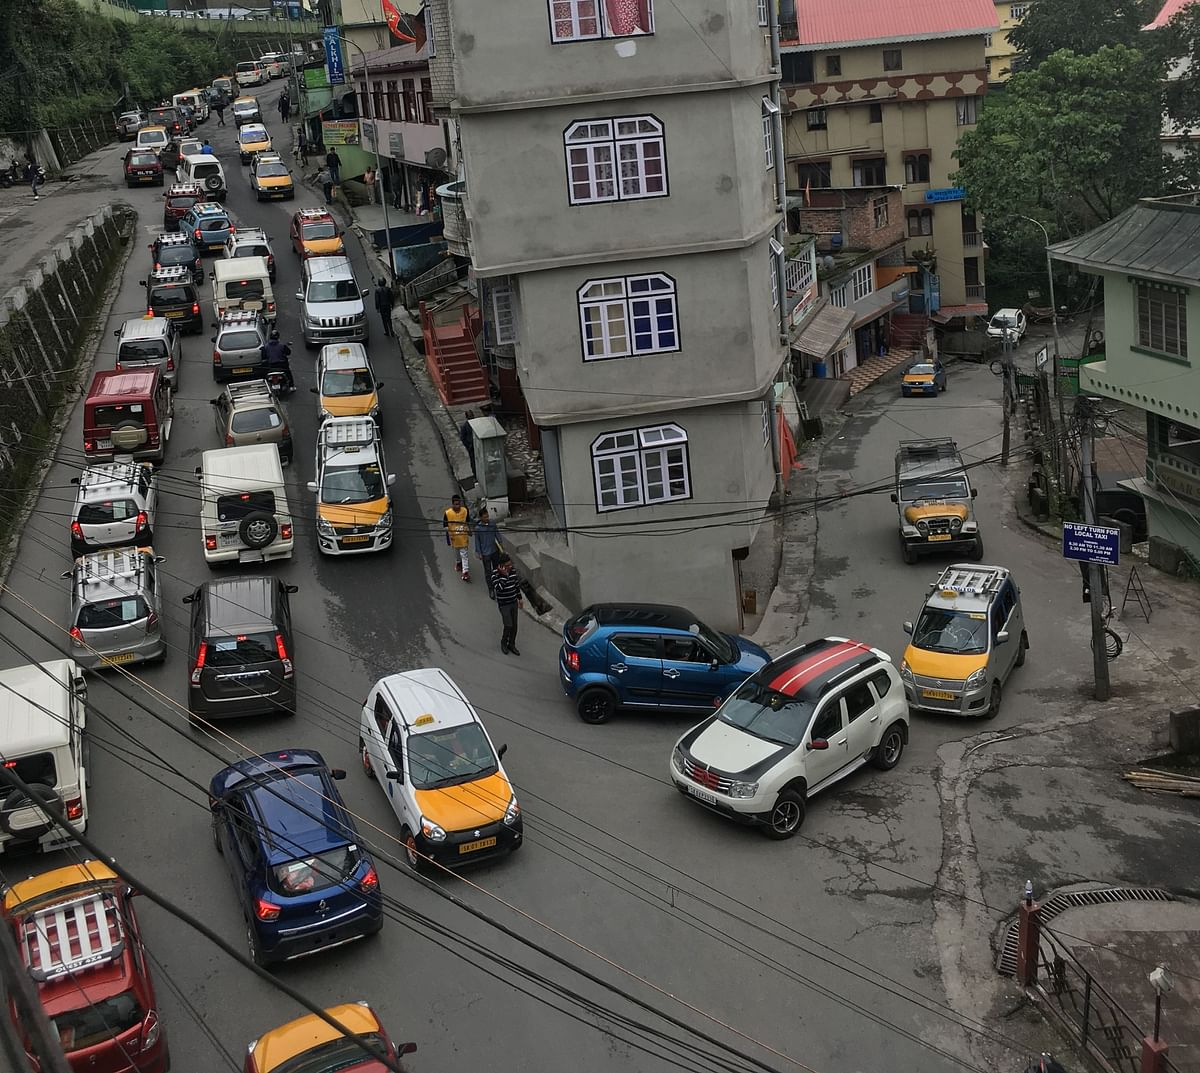 There are merely 7,960 taxis, while the private vehicles are far more with the numbers reaching over 30,000 in East Sikkim alone